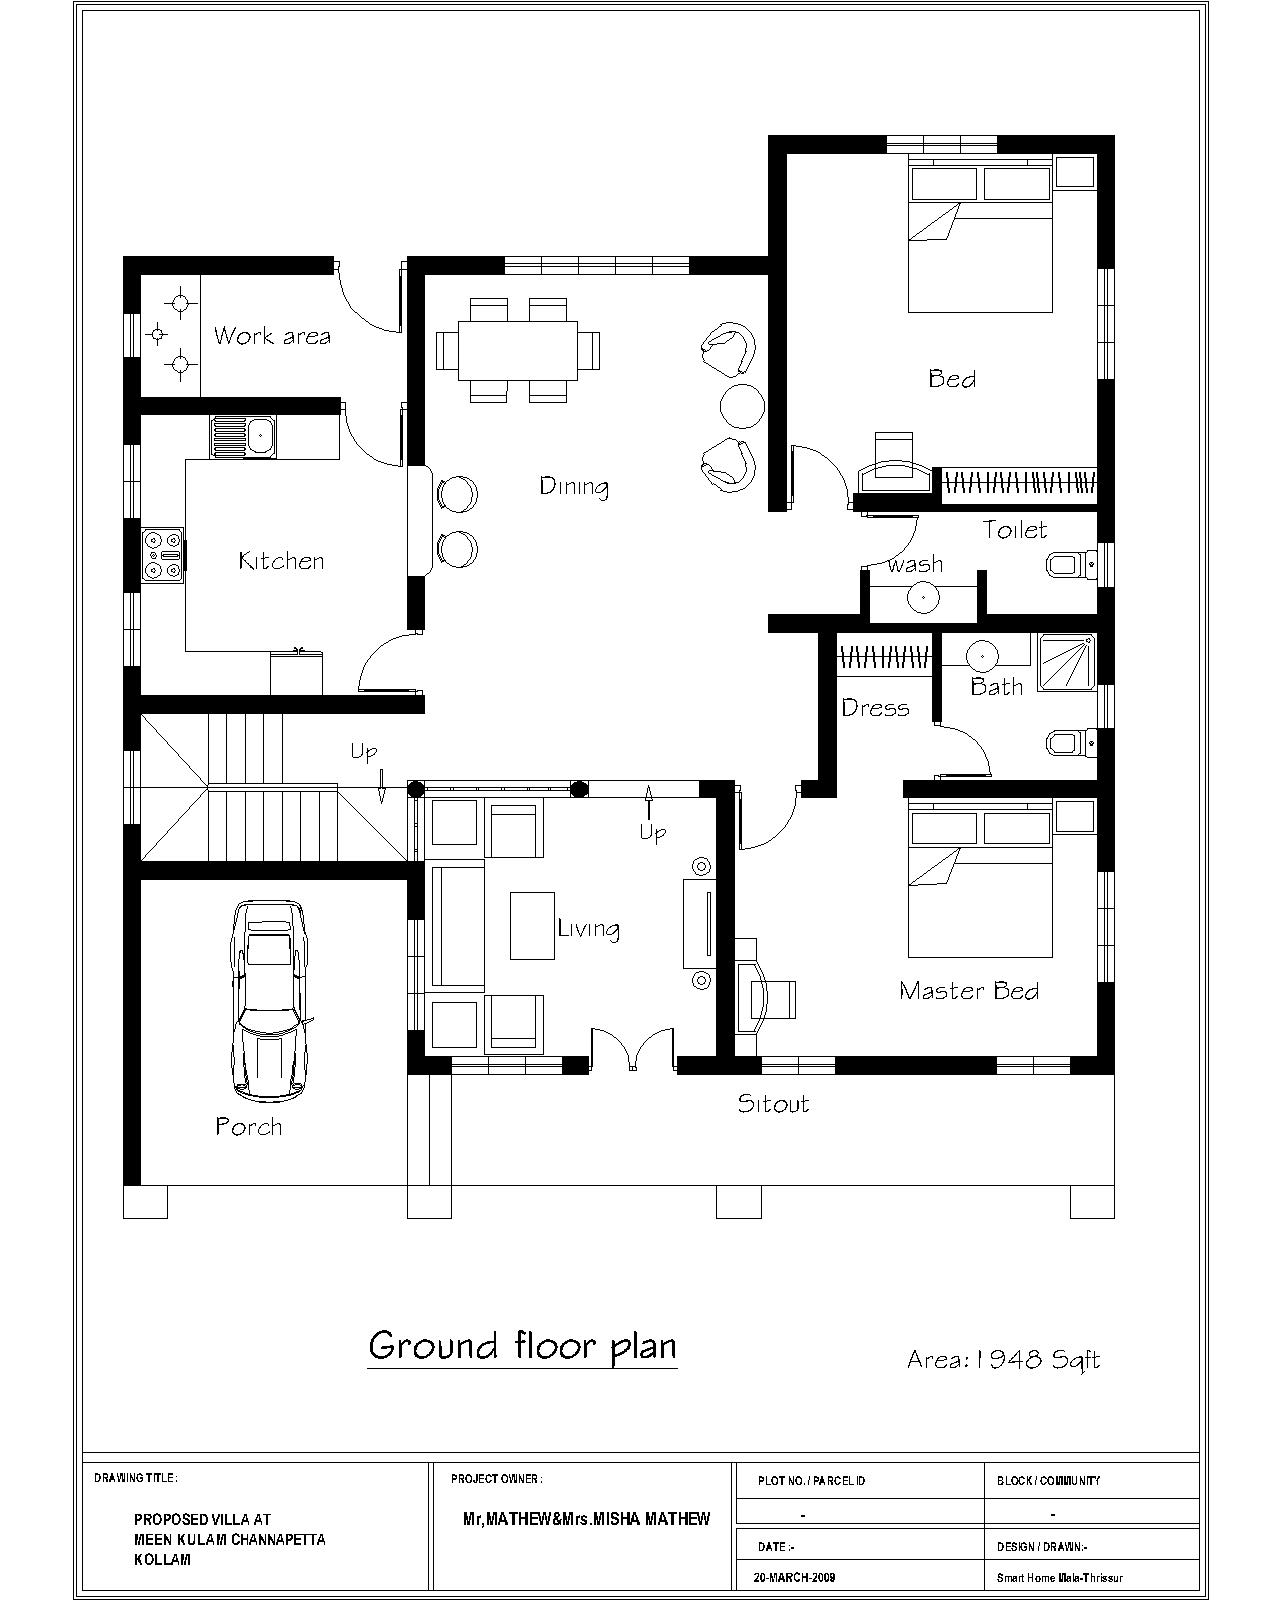 4 bedroom houses for rent 4 bedroom house floor plans 7 for Rental property floor plans